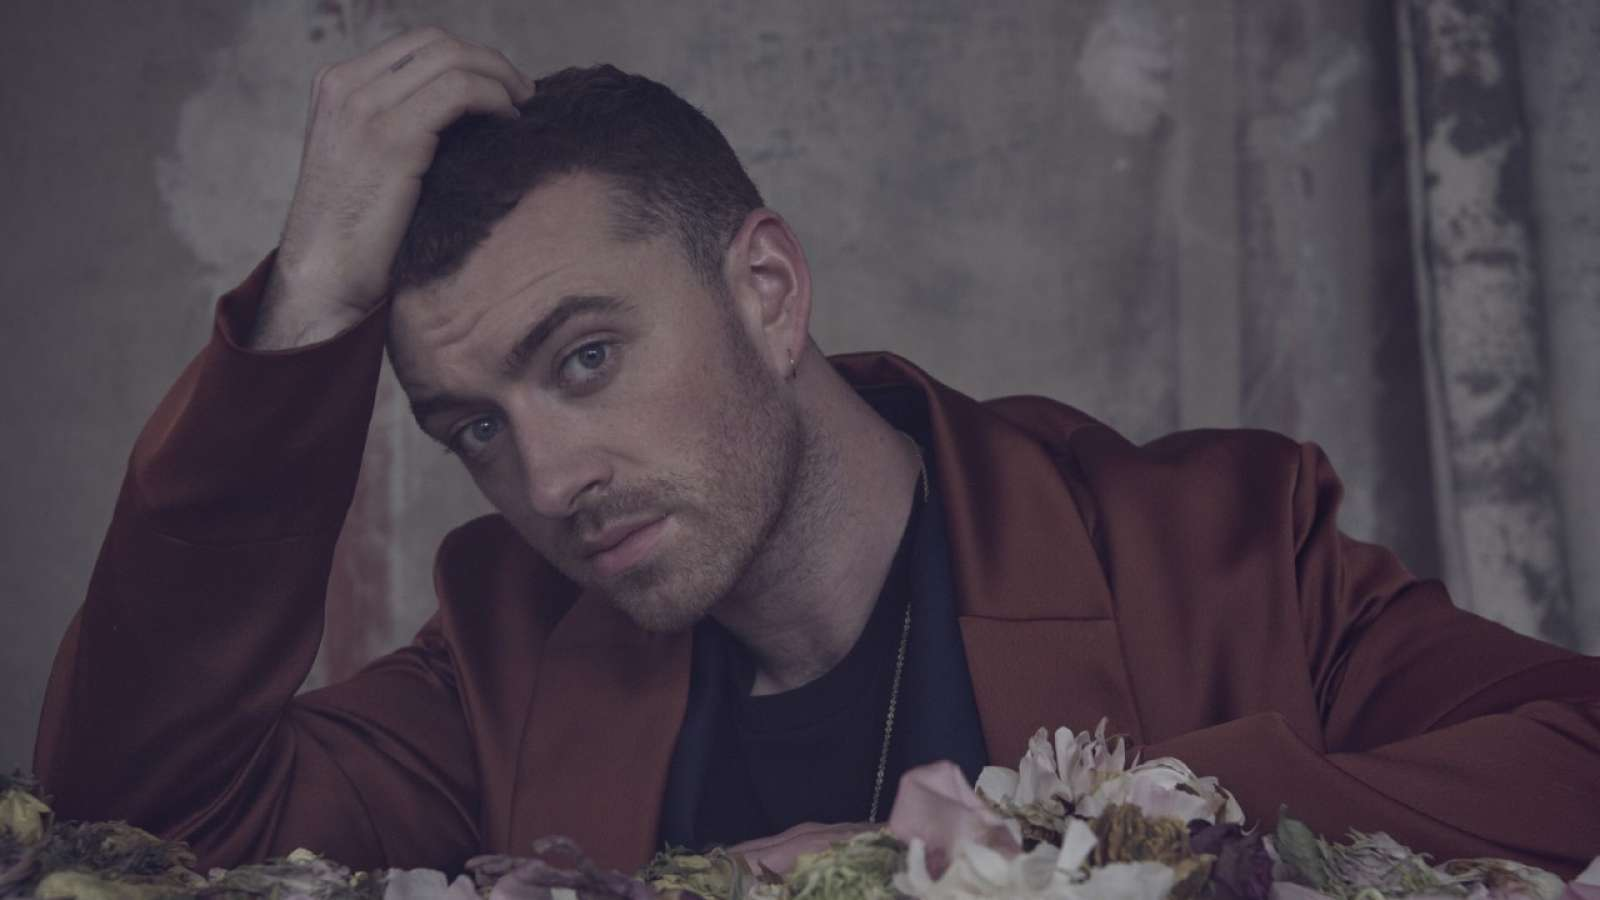 Sam Smith with hand on his head